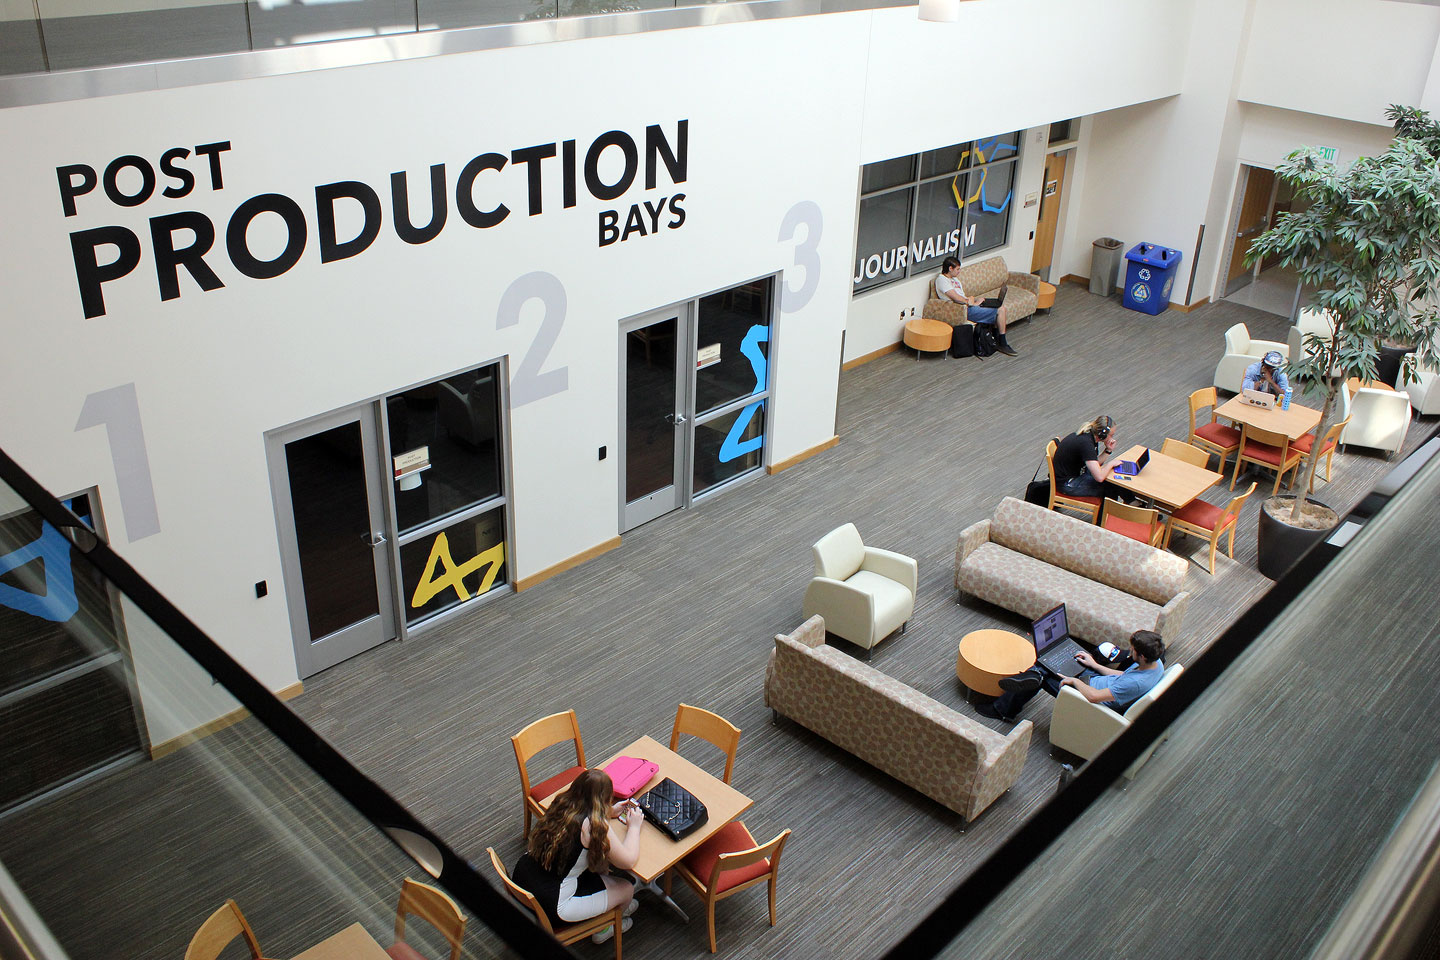 Students study near post production bays